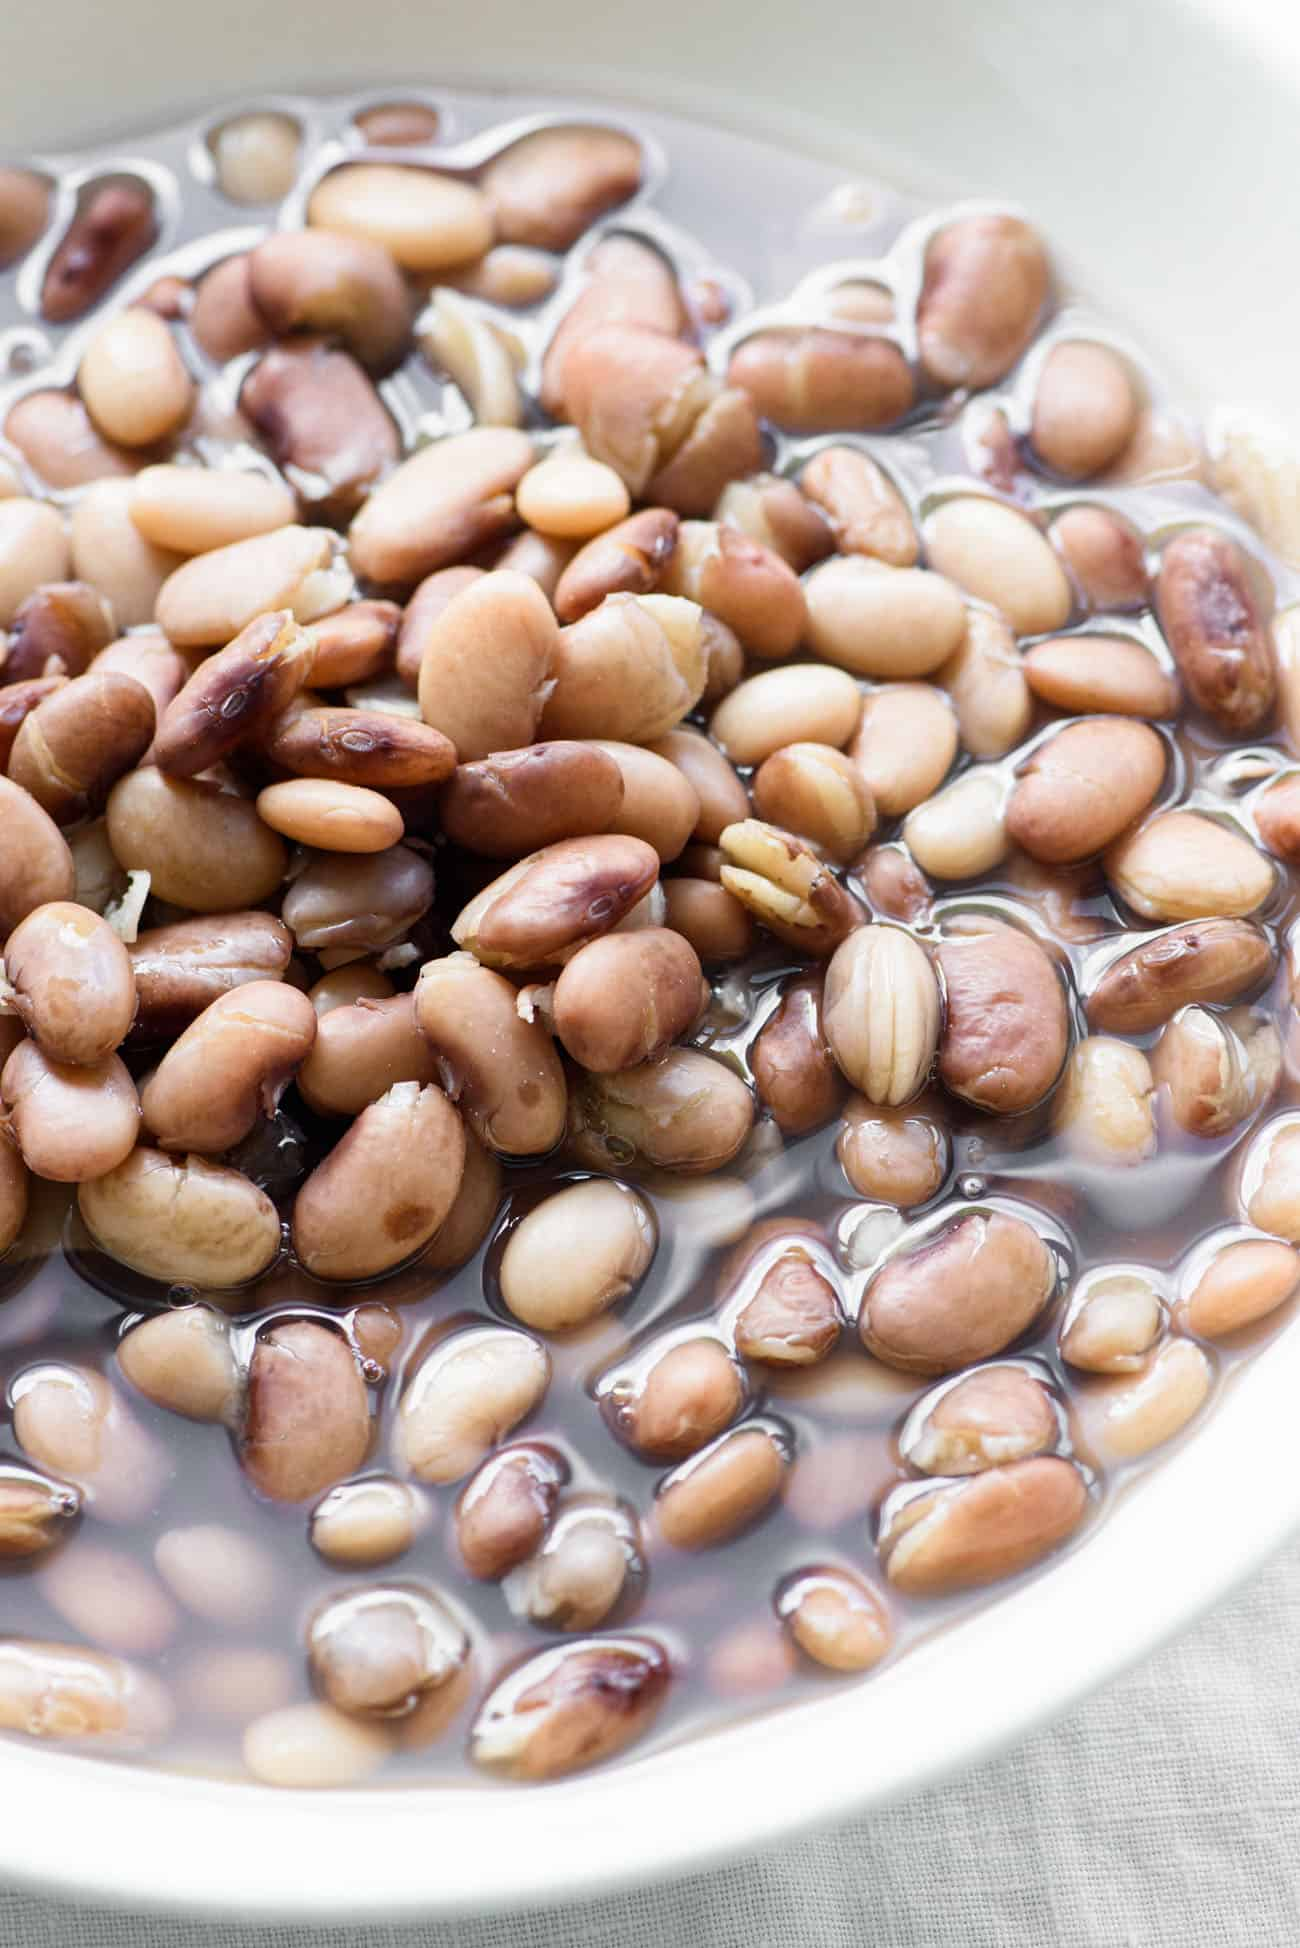 A bowl of cooked pinto beans